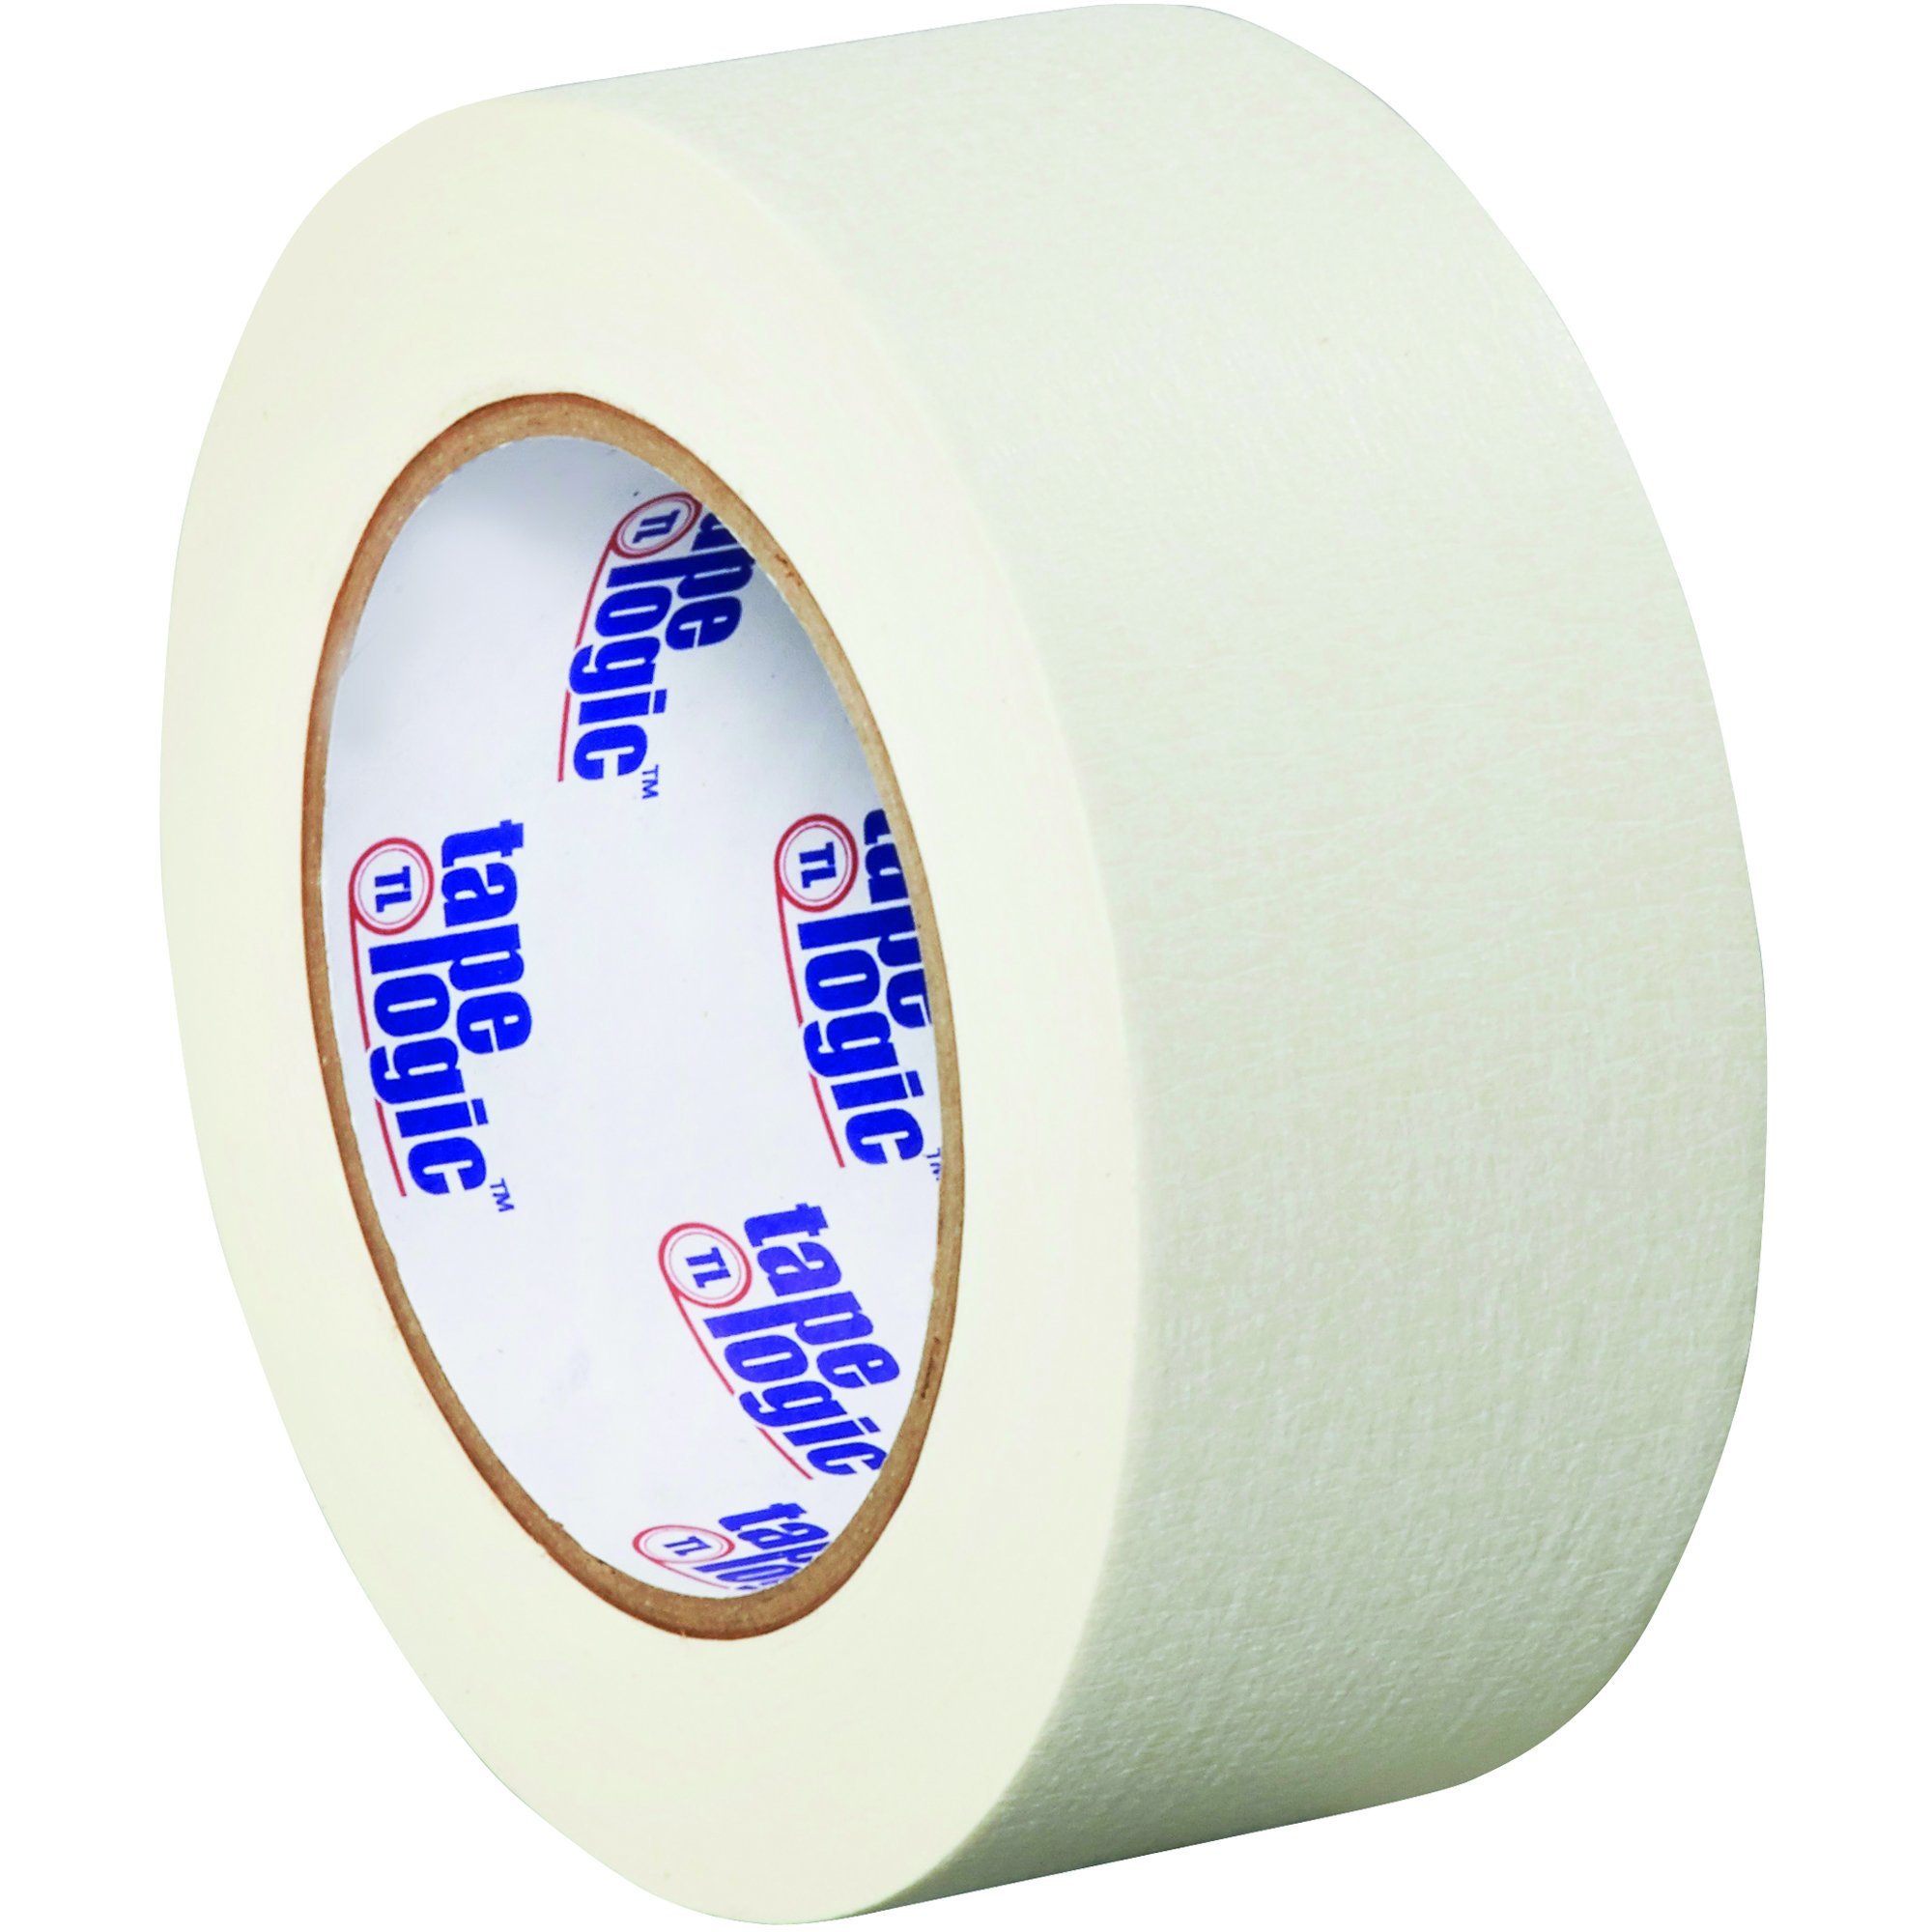 Colored White Masking Tape, 2 Inch x 60 Yds Per Roll (24 Rolls), Thick 4.9 Mil Multi Use for Identification, Painting, Labeling, Packing, Arts and Crafts, Home and Office